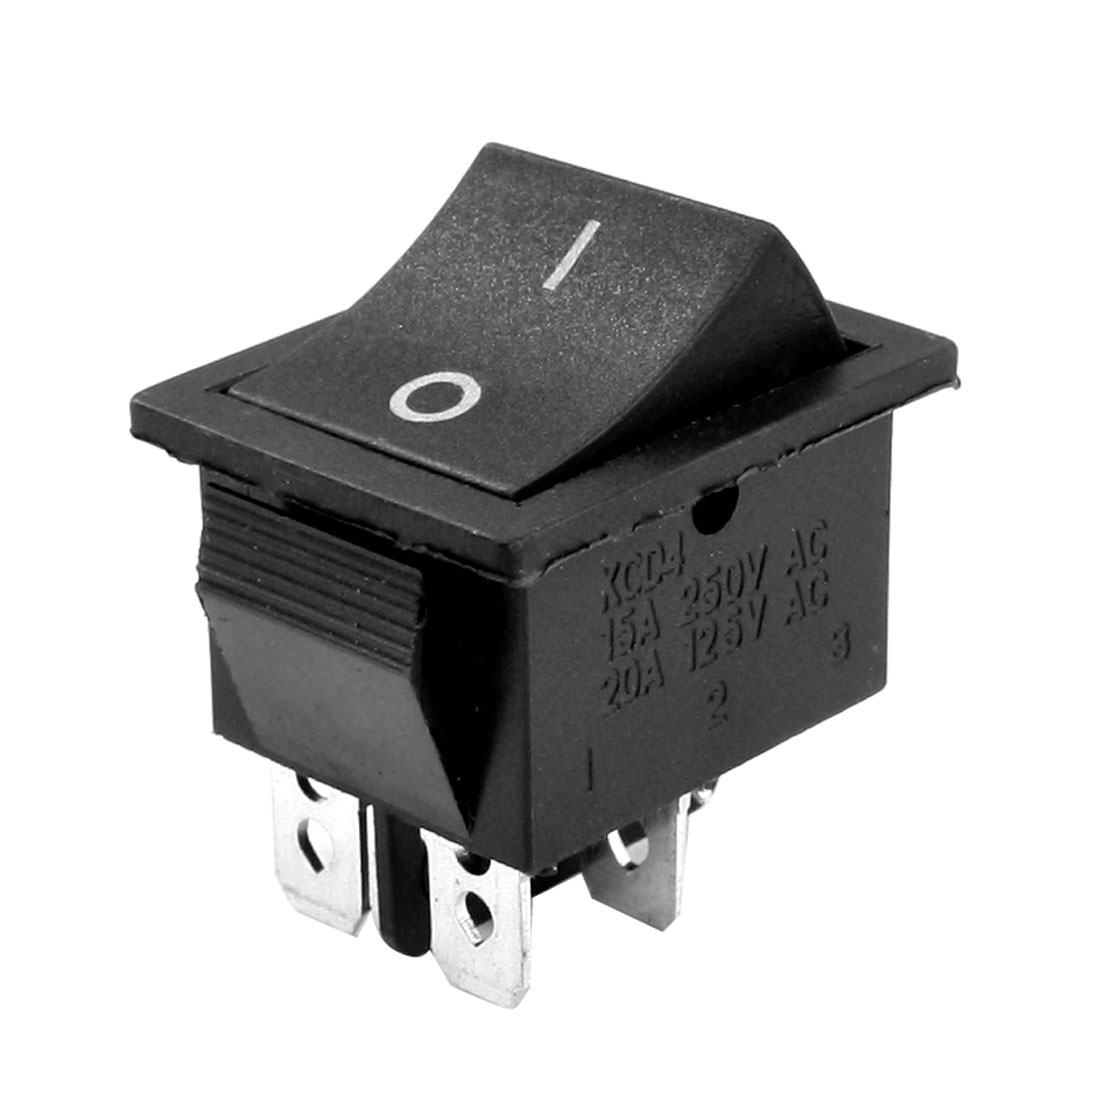 I/O ON/OFF 2 Position 4 Pin Solder DPST Snap in Mounting Rocker Switch